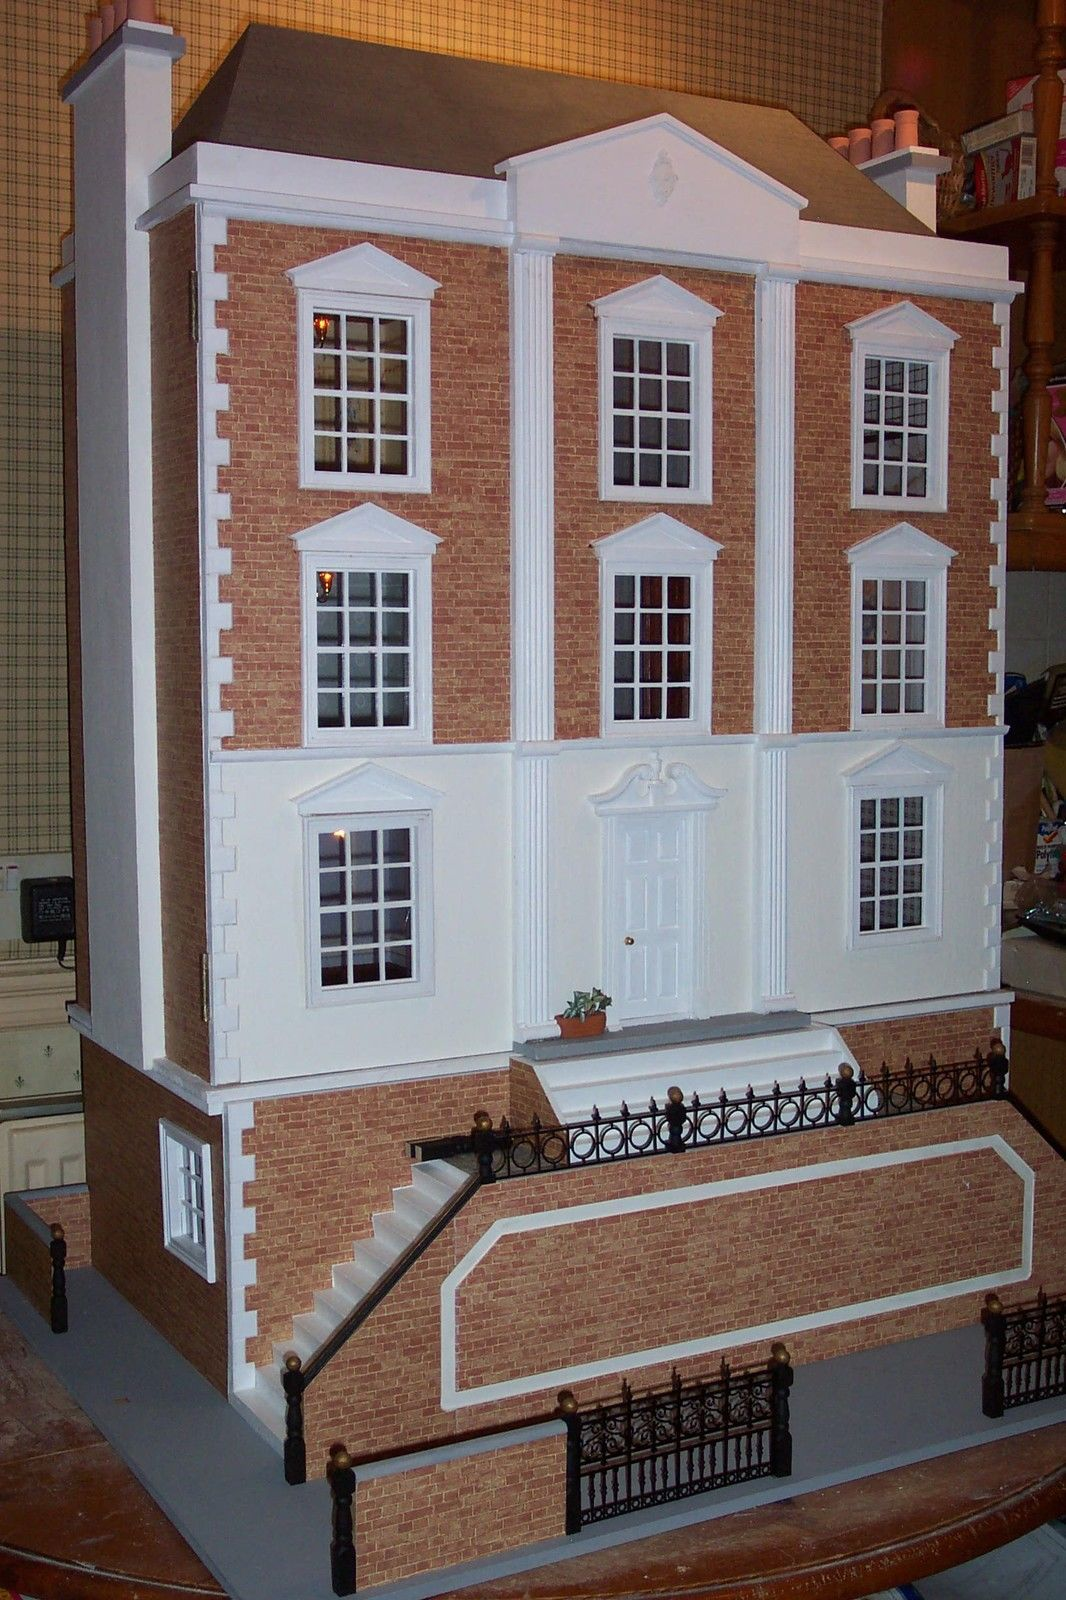 Dolls House Emporium Montgomery Hall, With Basement Rooms Added. Contact Me  From My Web Site. .....Rick Maccione Dollhouse Builder  Www.dollhousemansions.com